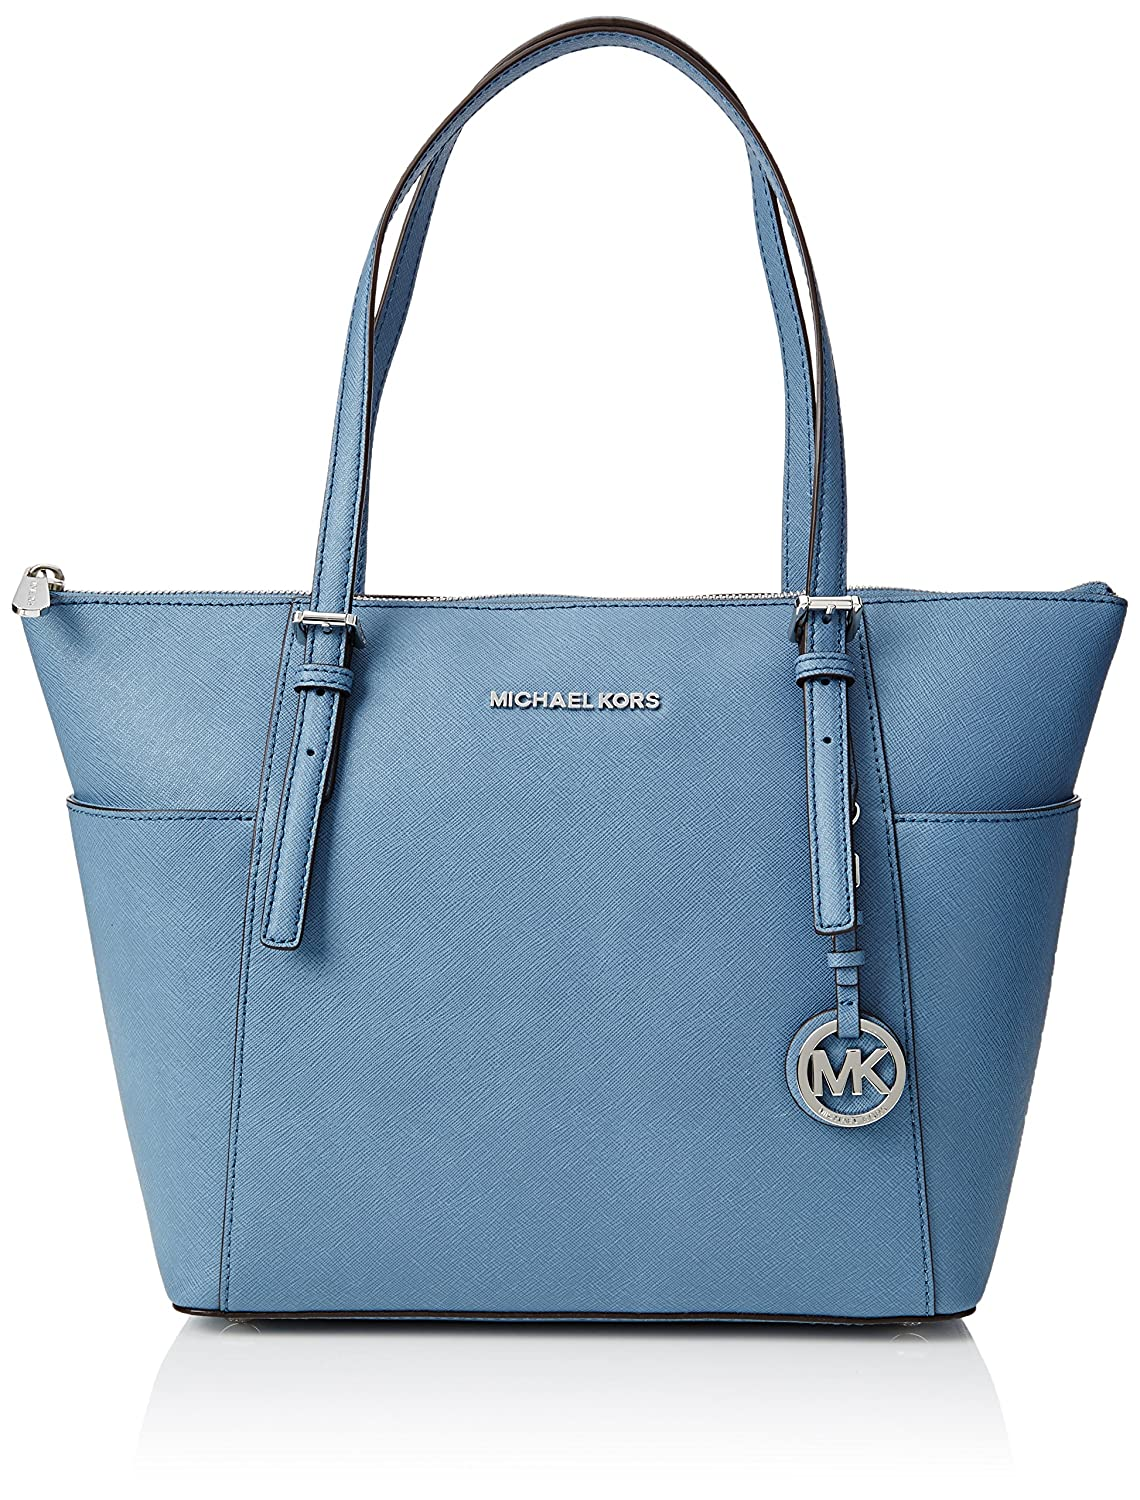 3e5f6af47505 Amazon.com  Michael Kors Women s Jet Set Item Ew Tz Tote